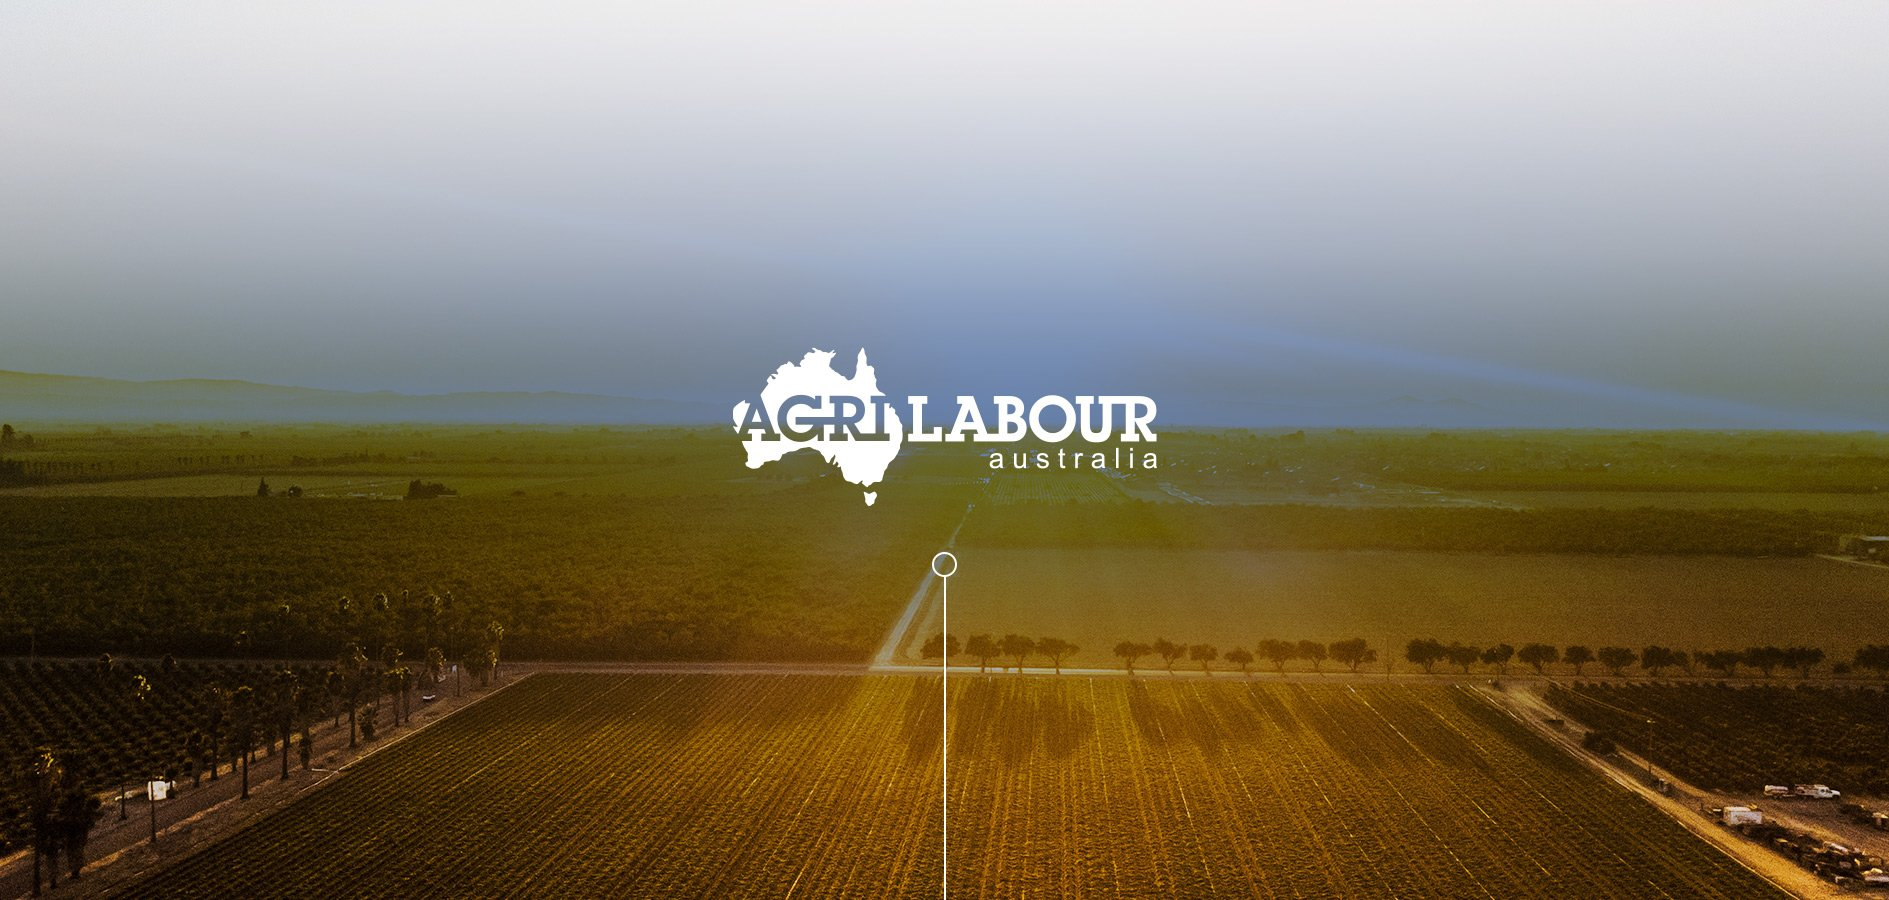 Graphic Design for Agri Labour Australia Recruitment by Sketch Corp.